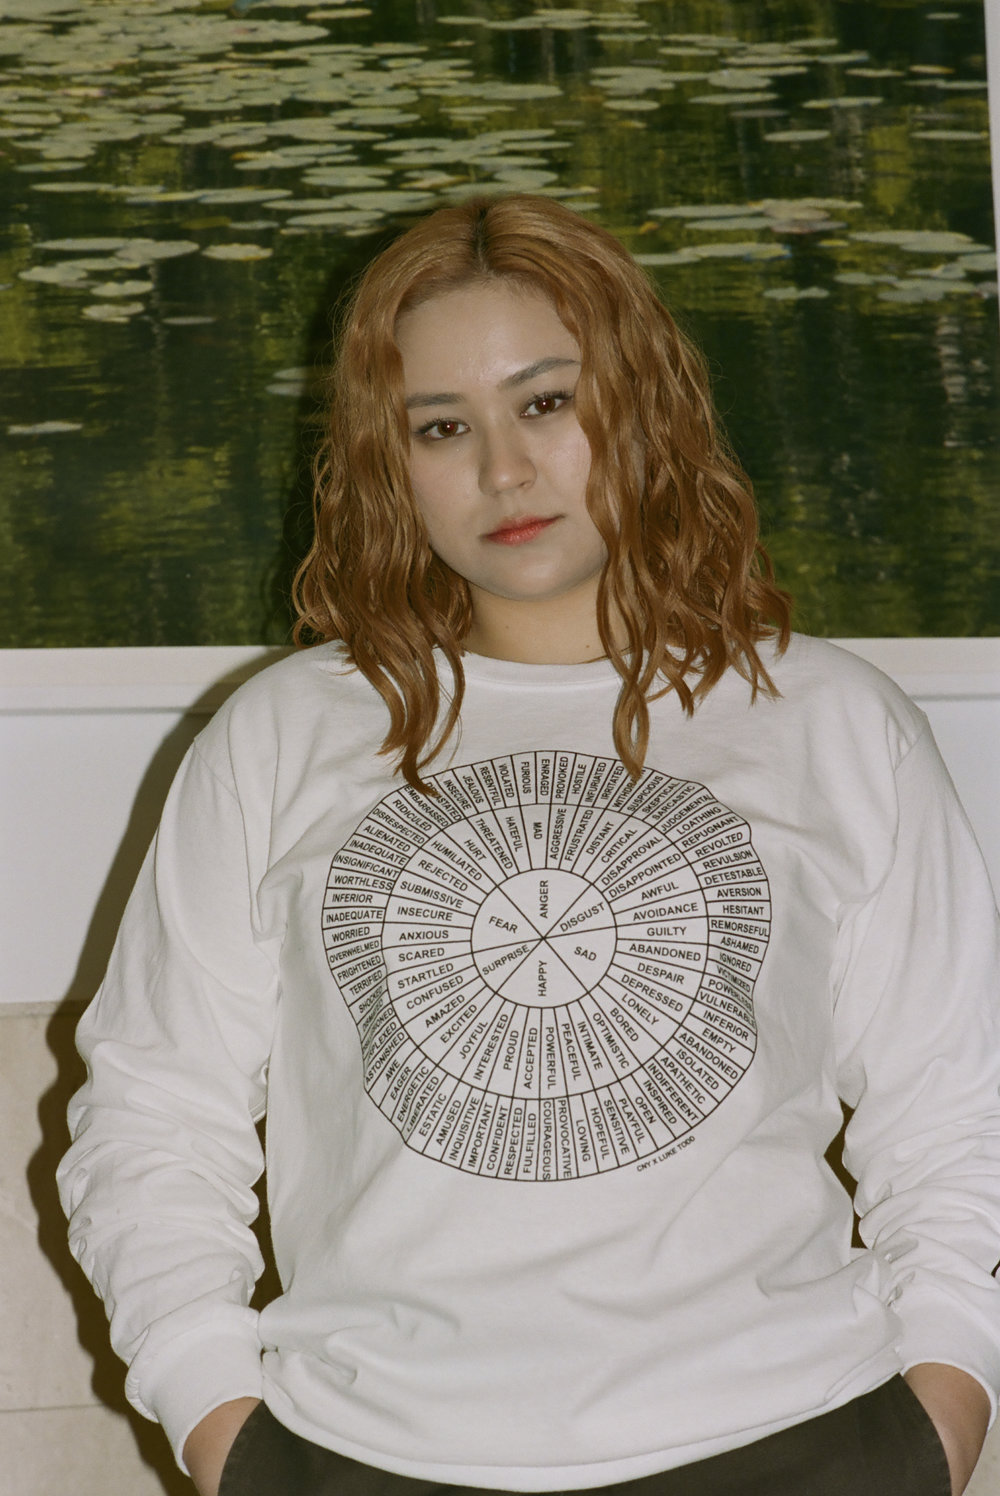 FEEL WHEEL LONGSLEEVE=== *****CNY X LUKE TODD COLLABO*****